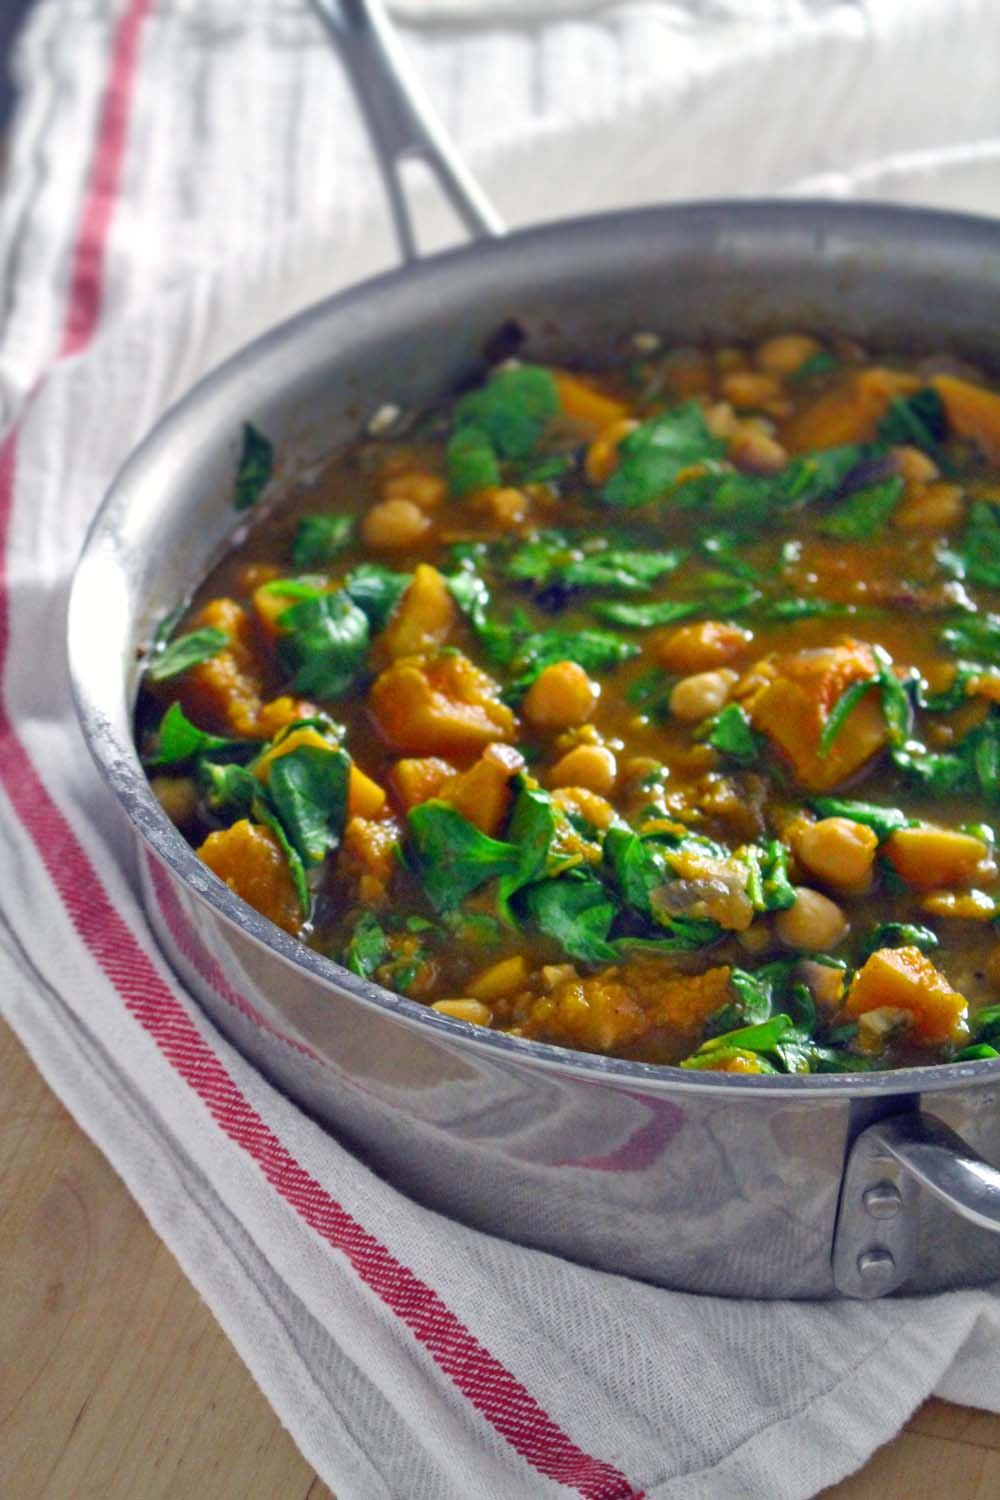 How To Make Garlic, Spinach, and Chickpea Soup : Glorious Soup Recipes